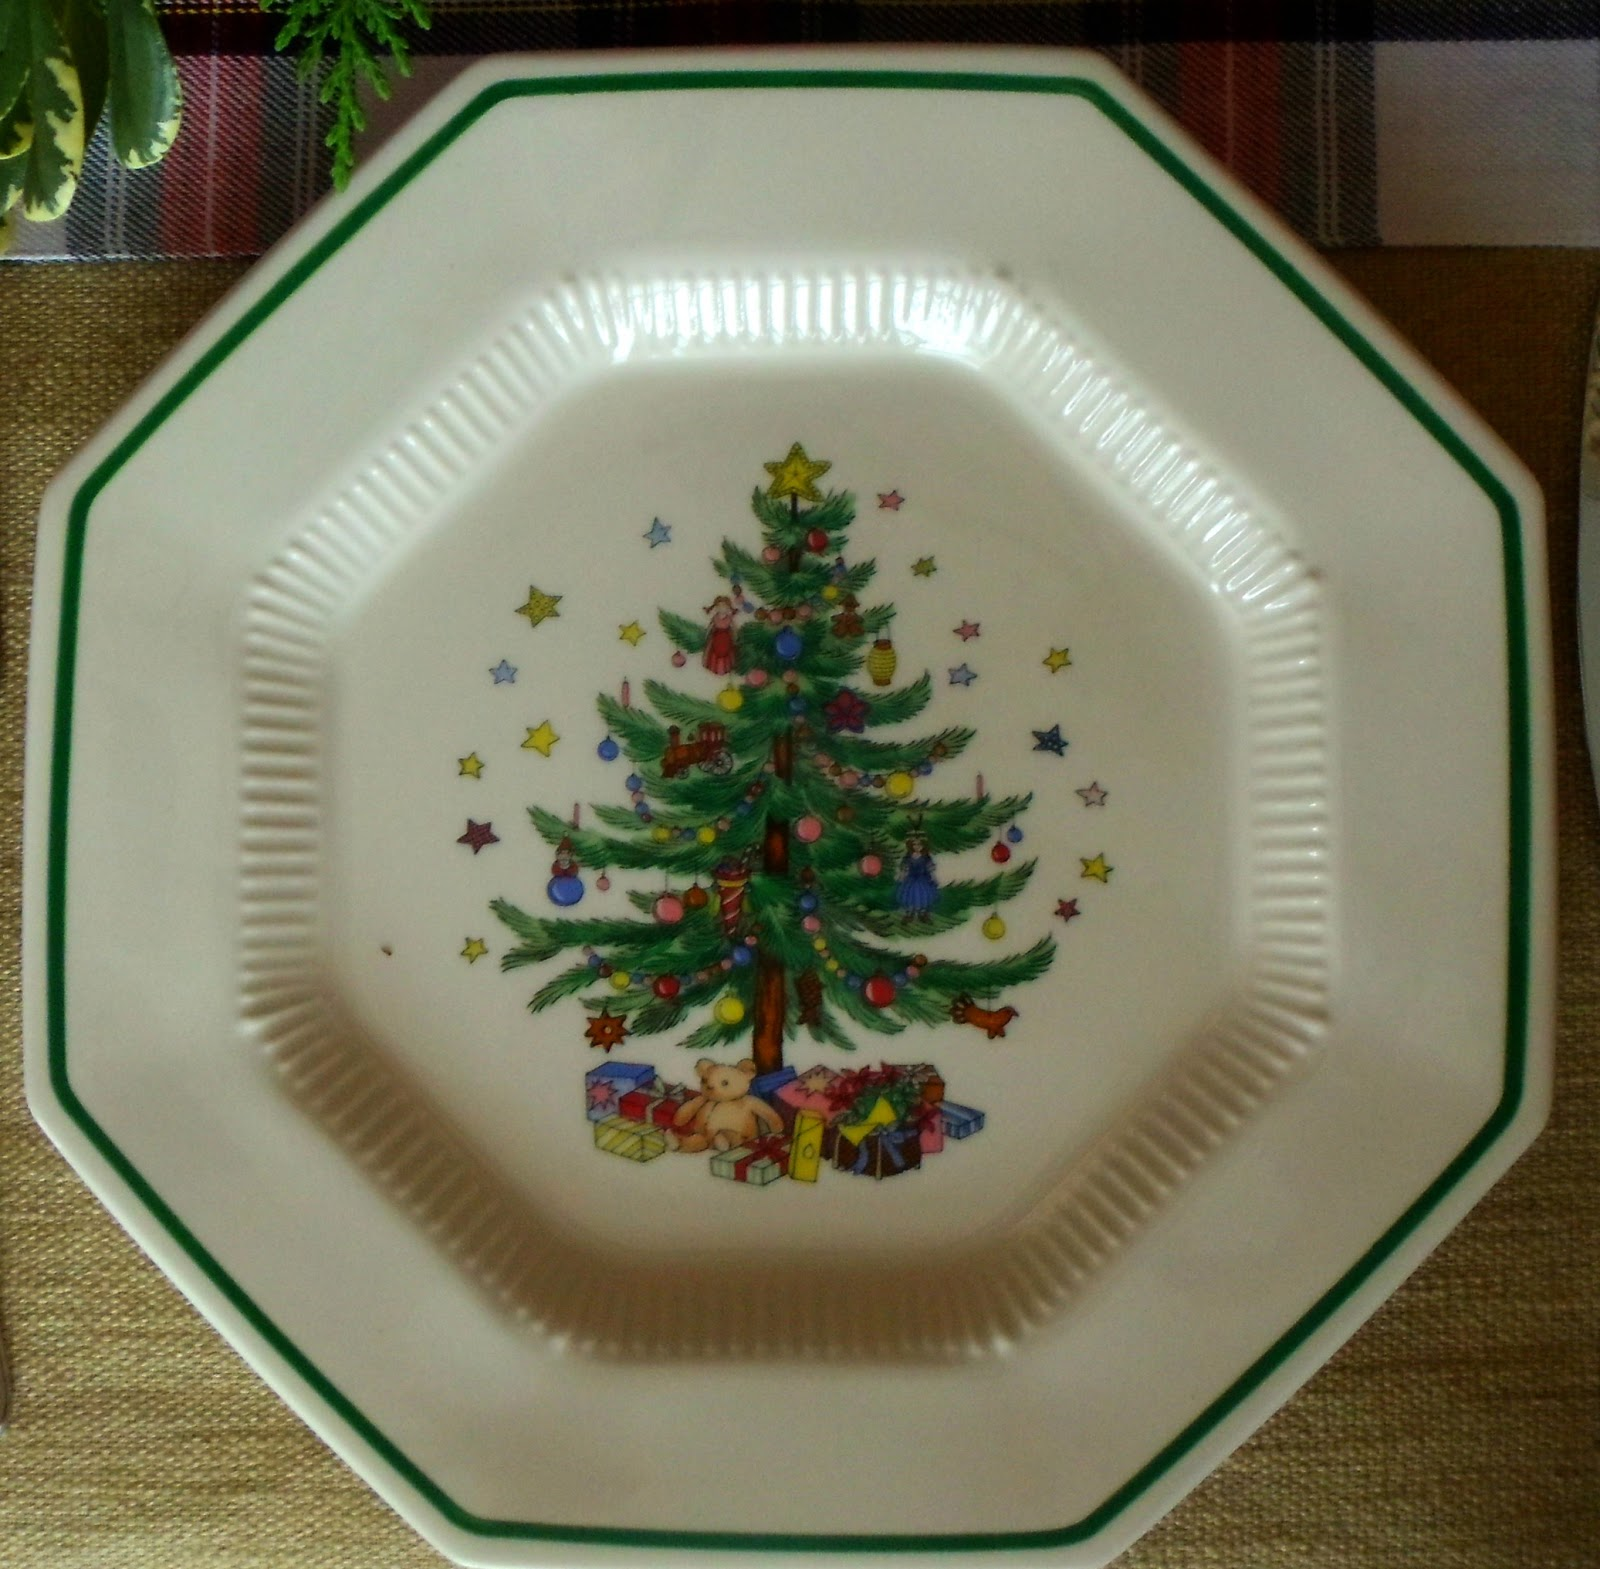 Upstairs Downstairs: Christmas Tablescape